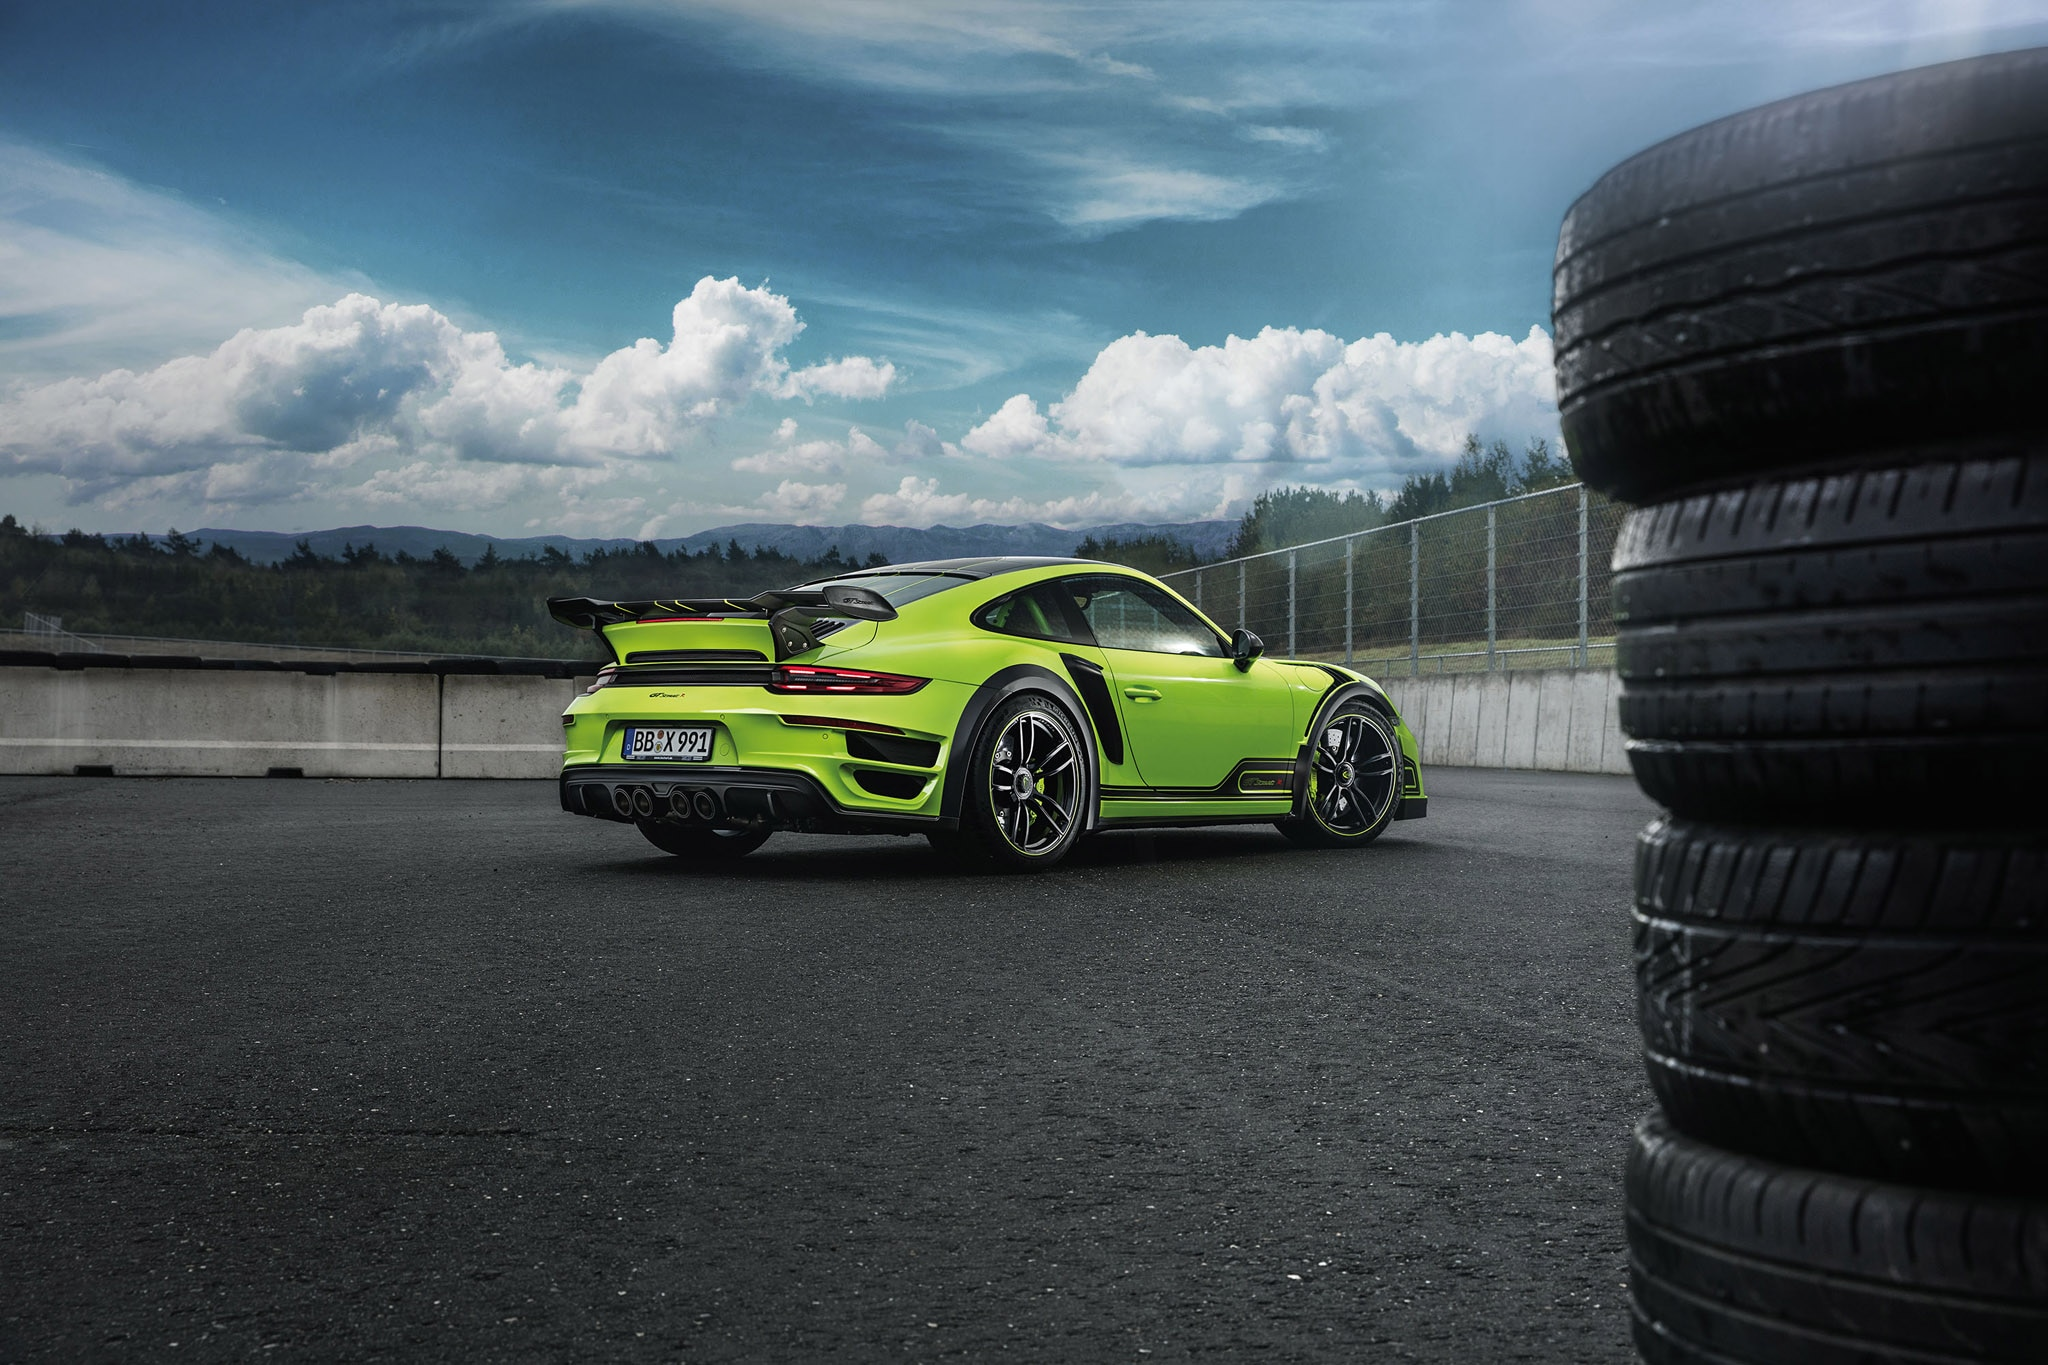 TECHART_GTstreet_R_exterior_02 Remarkable Techart Porsche 911 Gt2 Gtstreet Rs Cars Trend